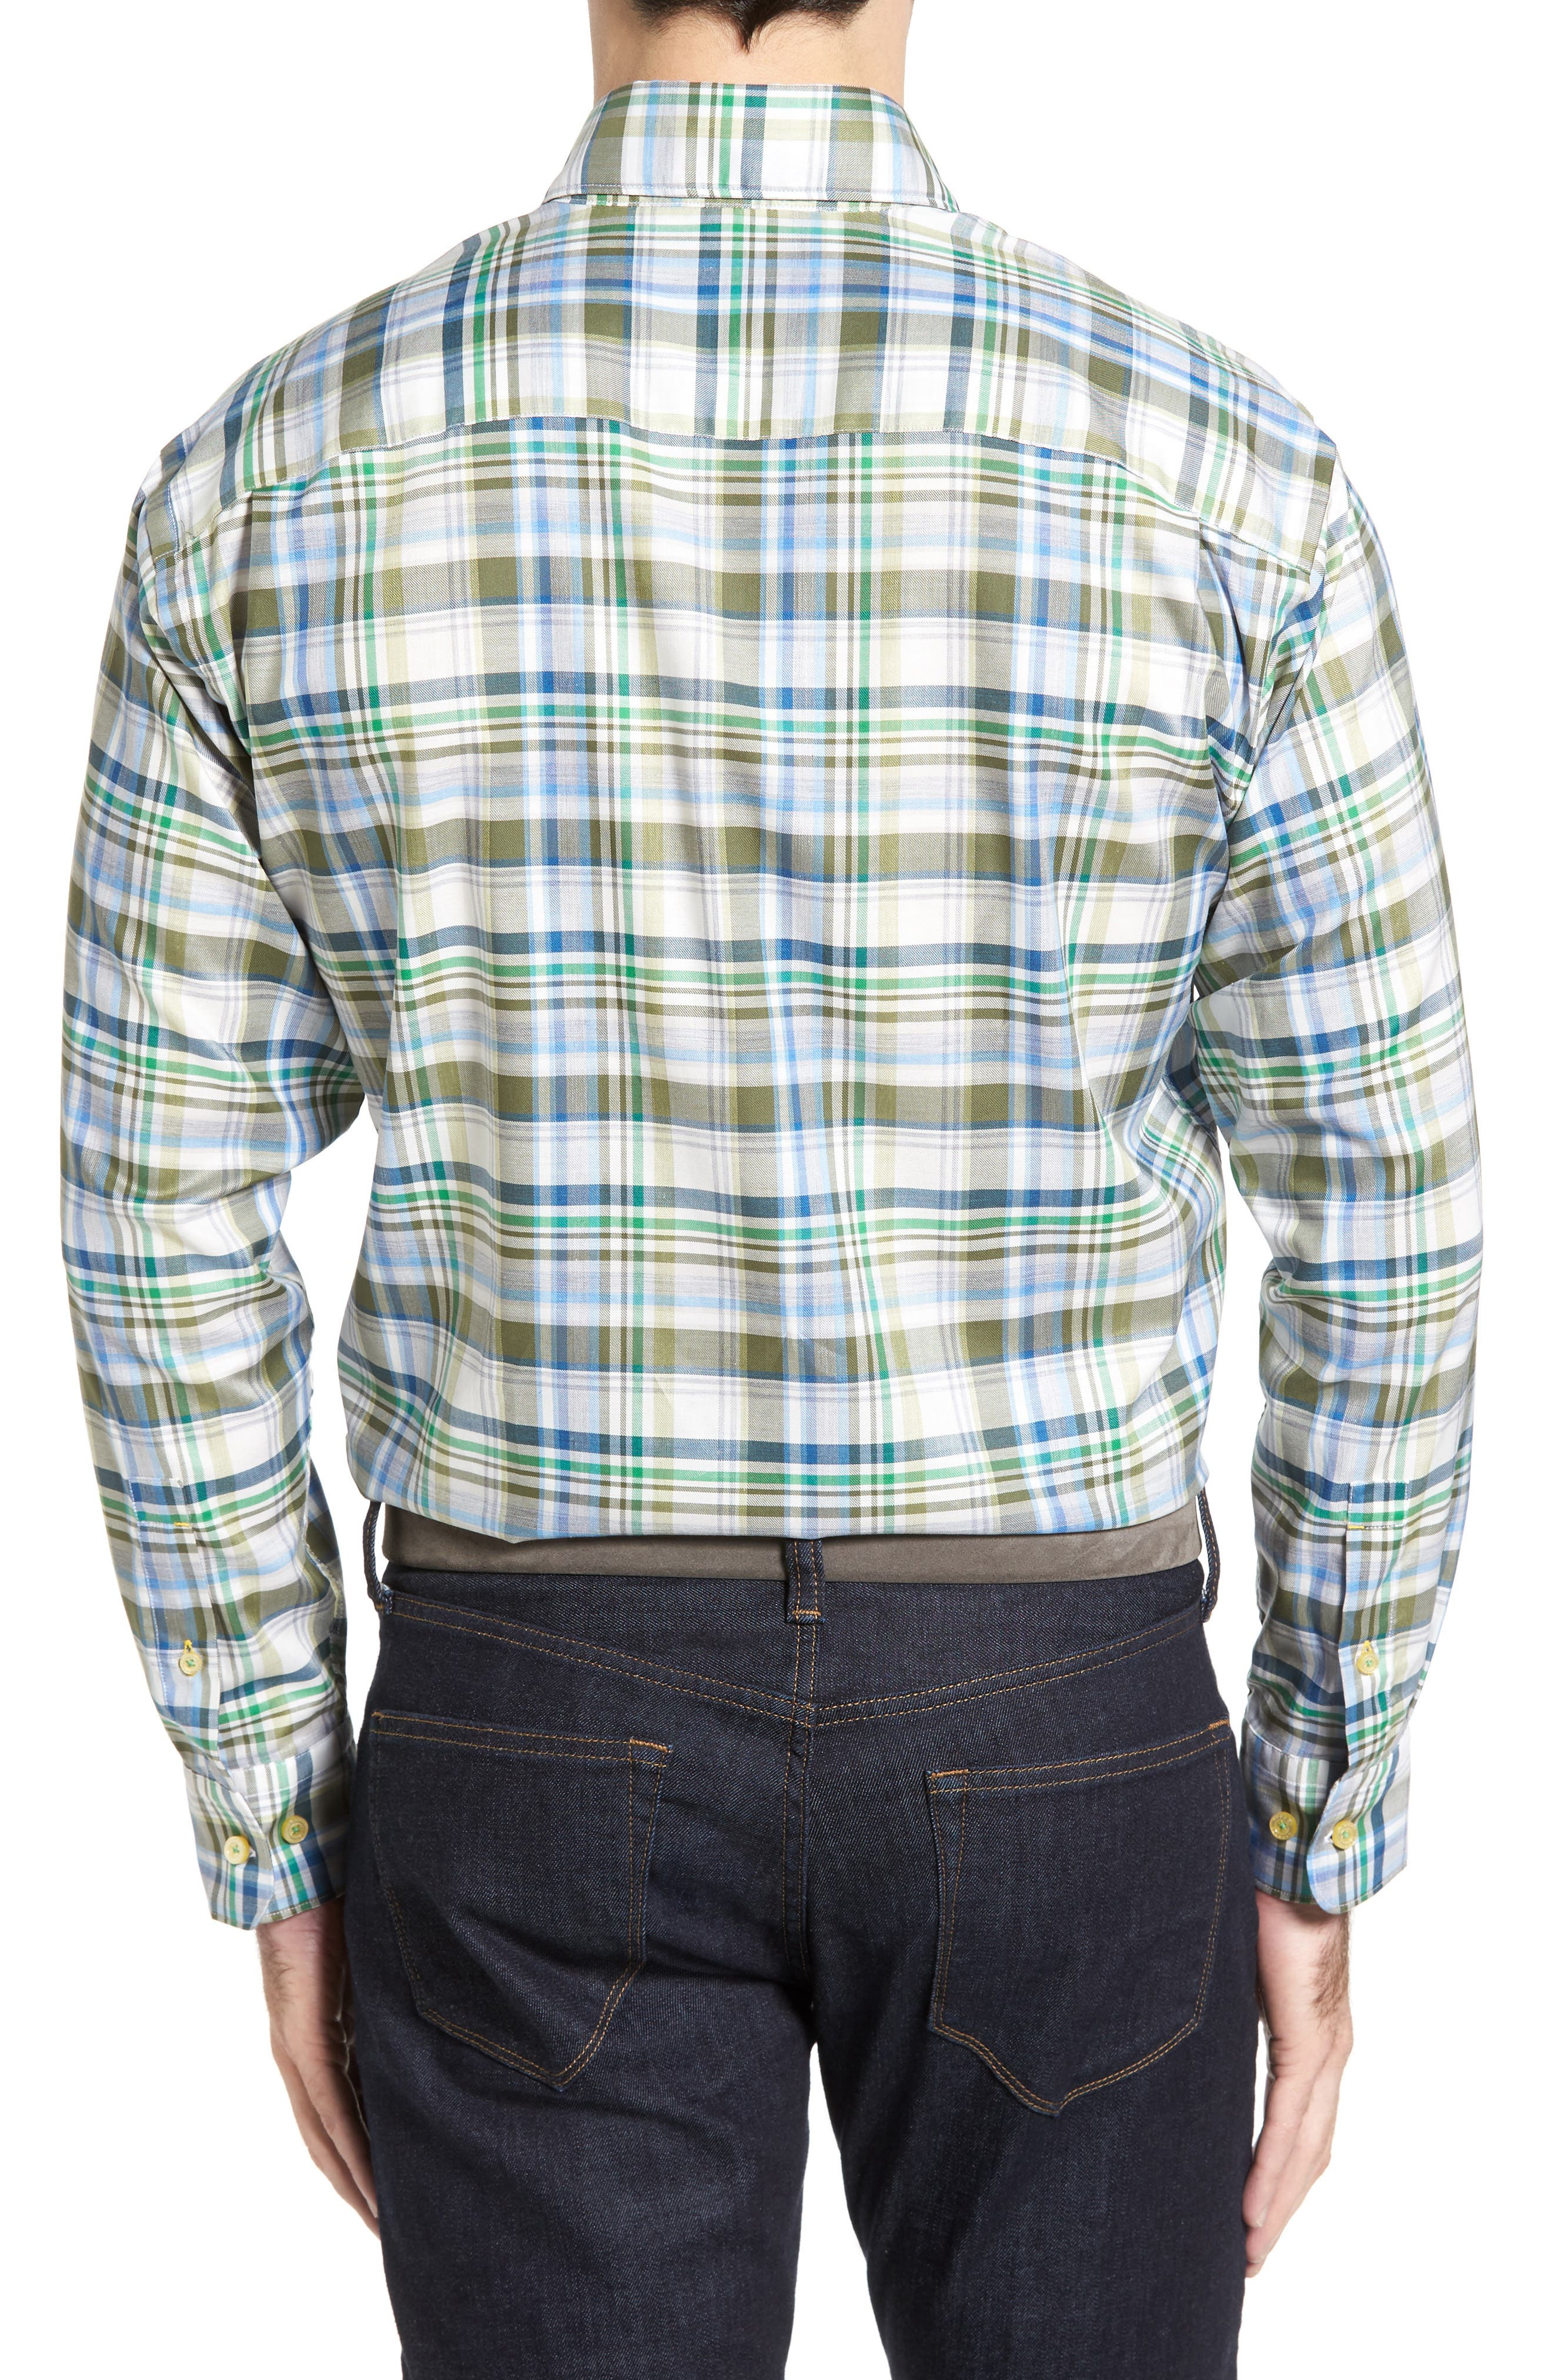 Anderson Classic Fit Plaid Micro Twill Sport Shirt,                             Alternate thumbnail 2, color,                             300